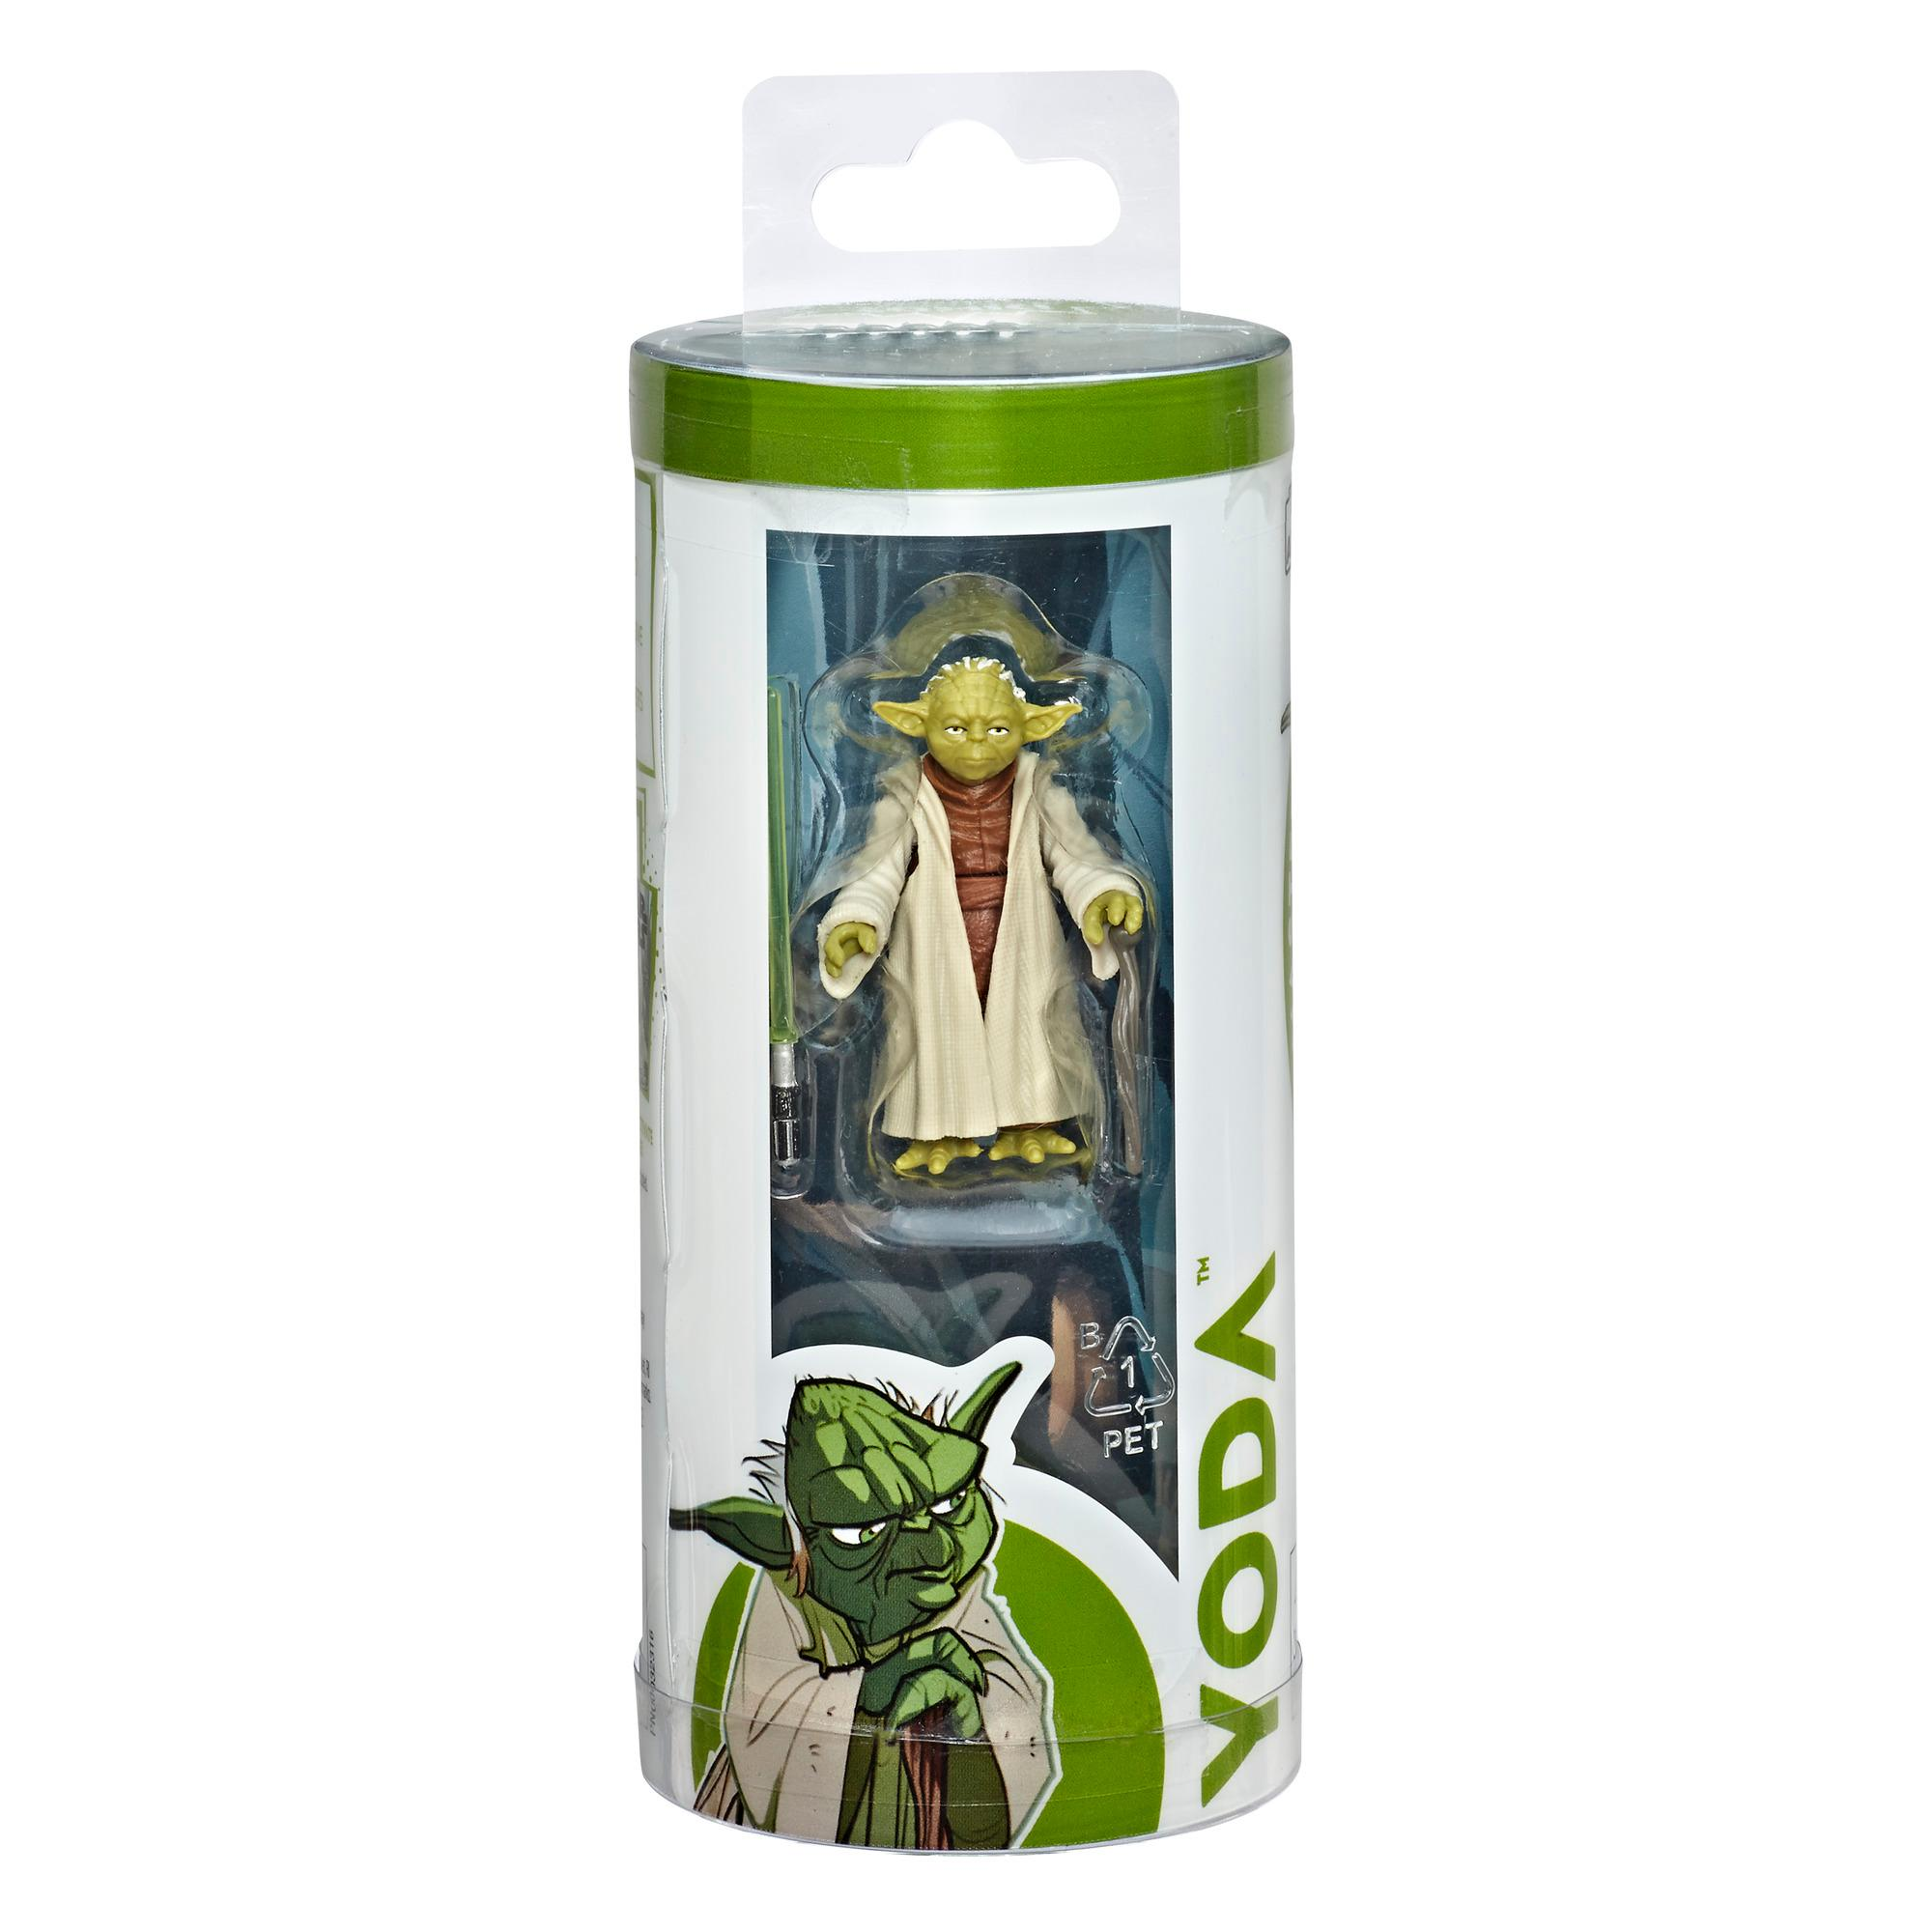 Star Wars Galaxy of Adventures - Figurine Yoda et mini bande dessinée